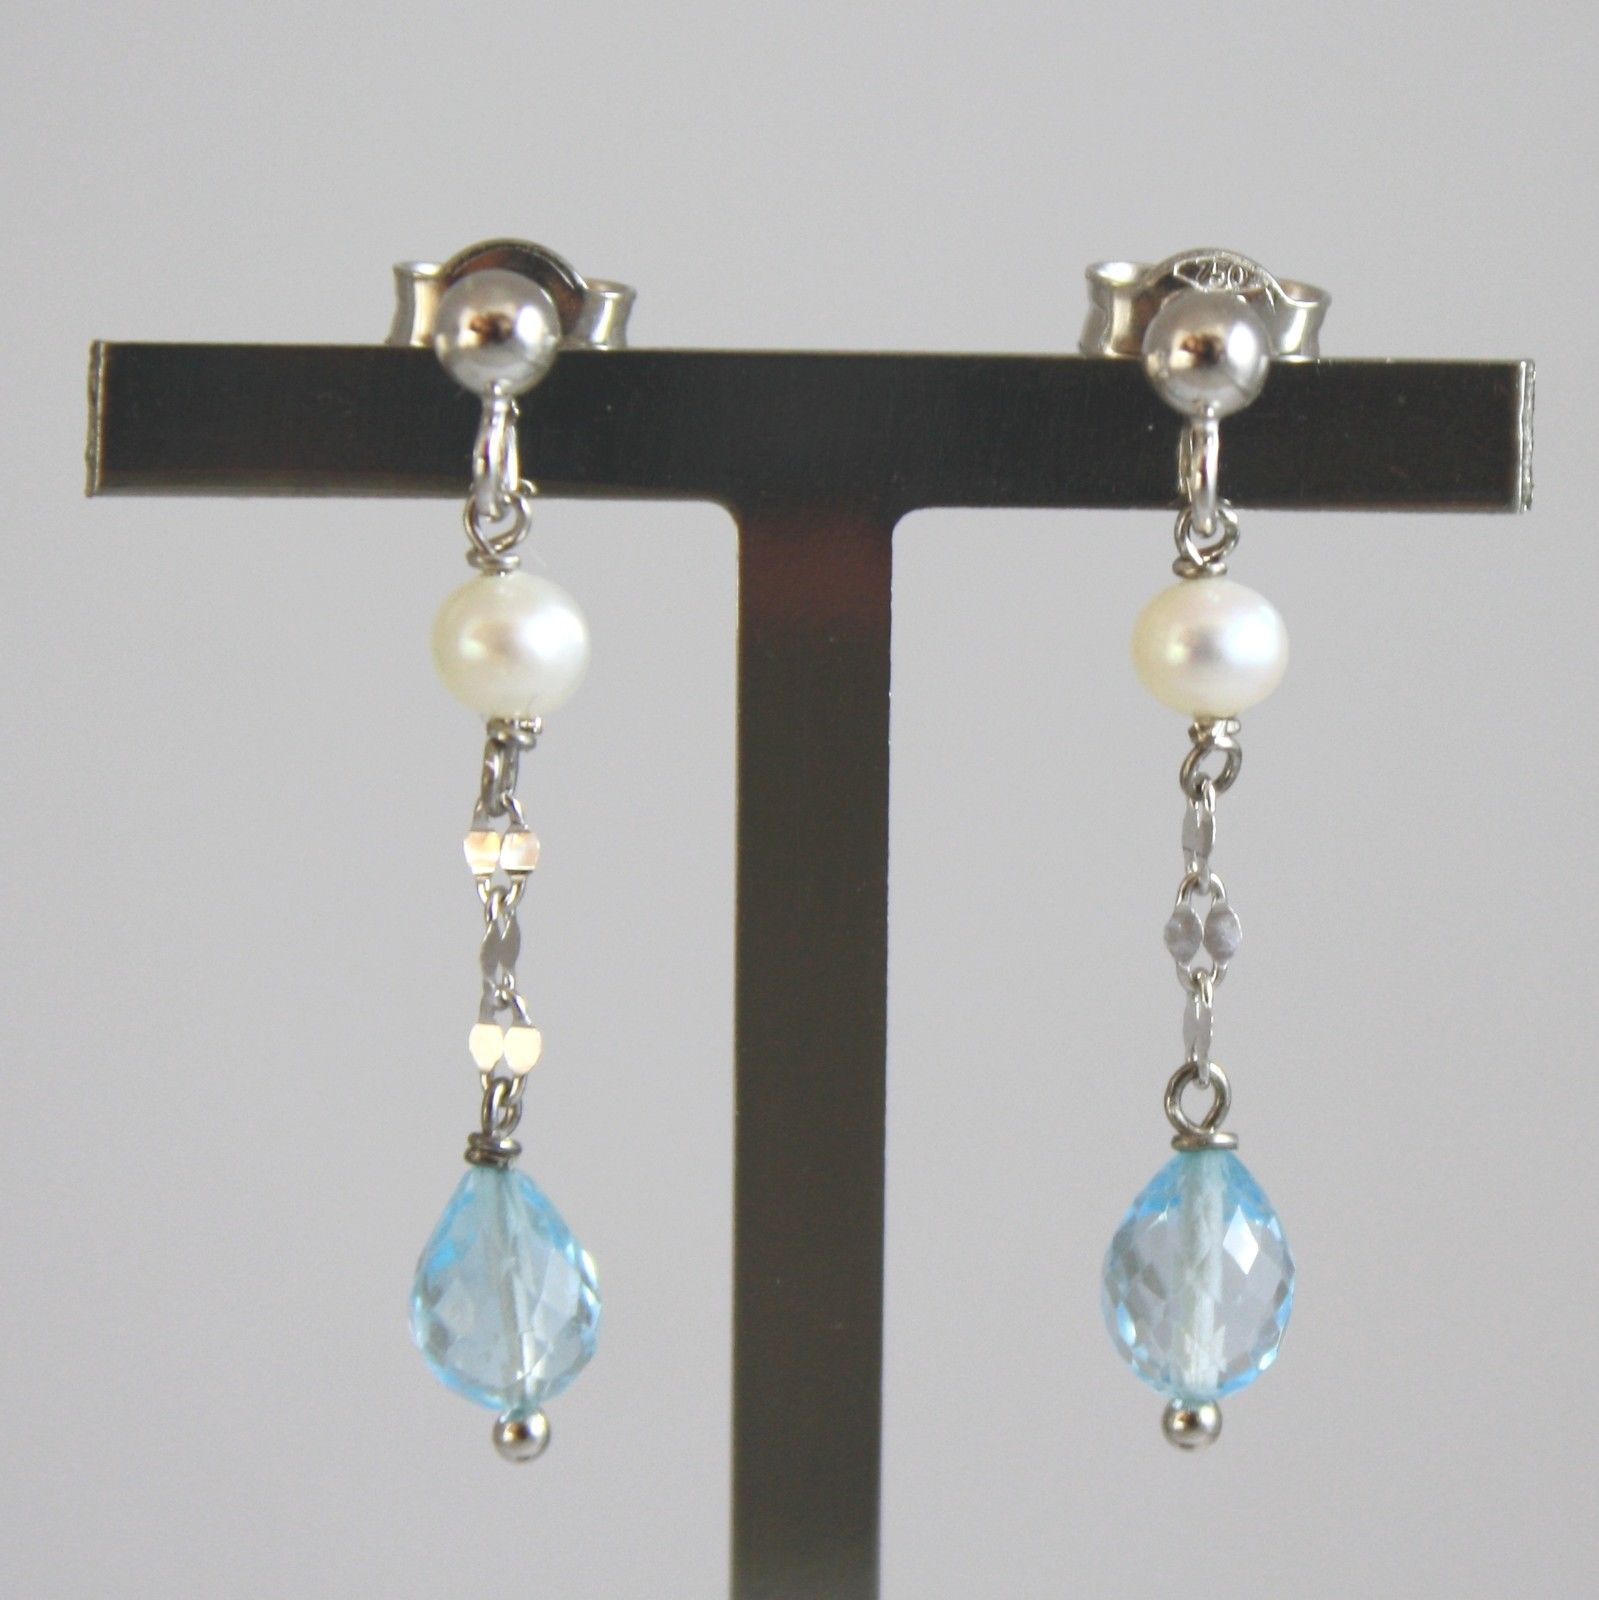 18K SOLID WHITE GOLD EARRINGS WITH DROPS OF BLUE TOPAZ AND PEARLS MADE IN ITALY